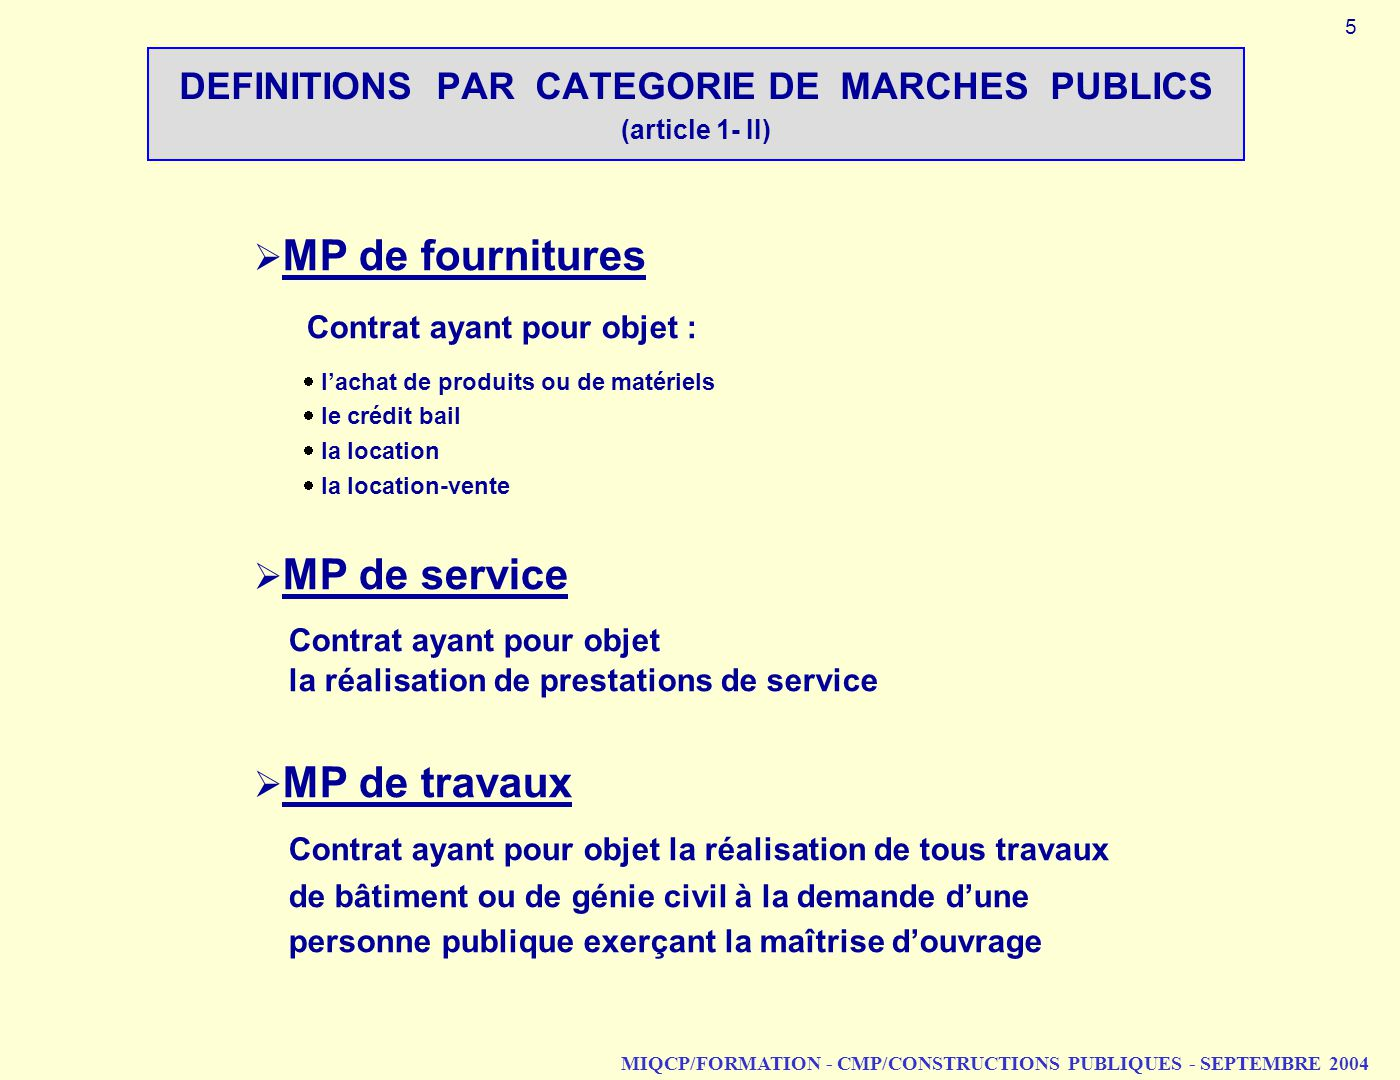 DEFINITIONS PAR CATEGORIE DE MARCHES PUBLICS (article 1‑ II)